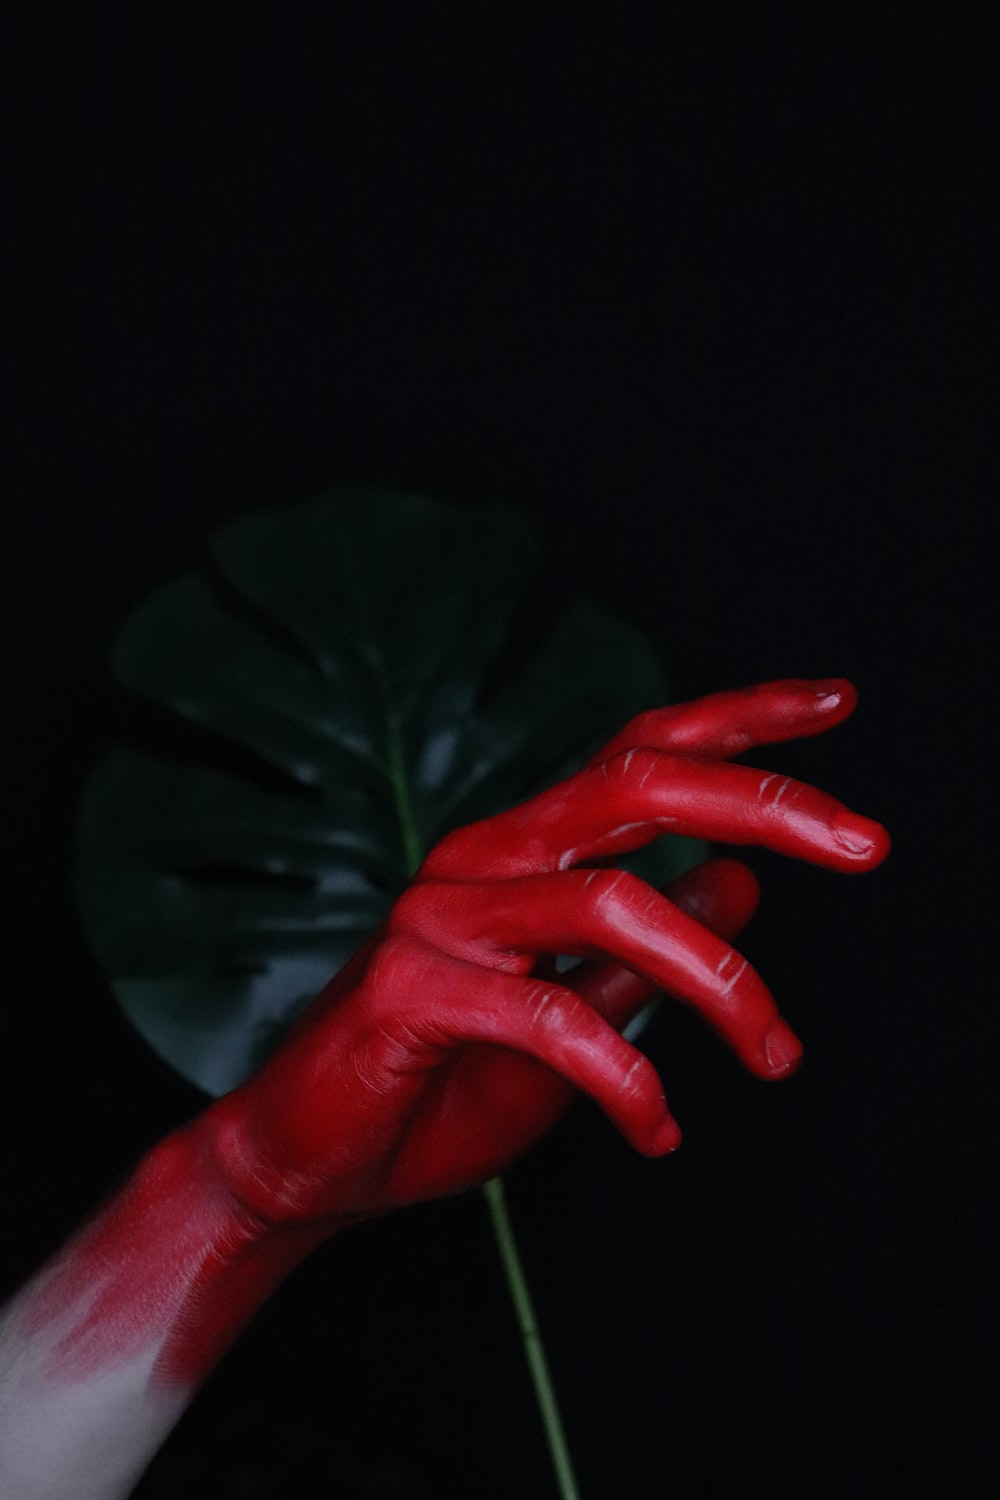 persons left hand with red manicure